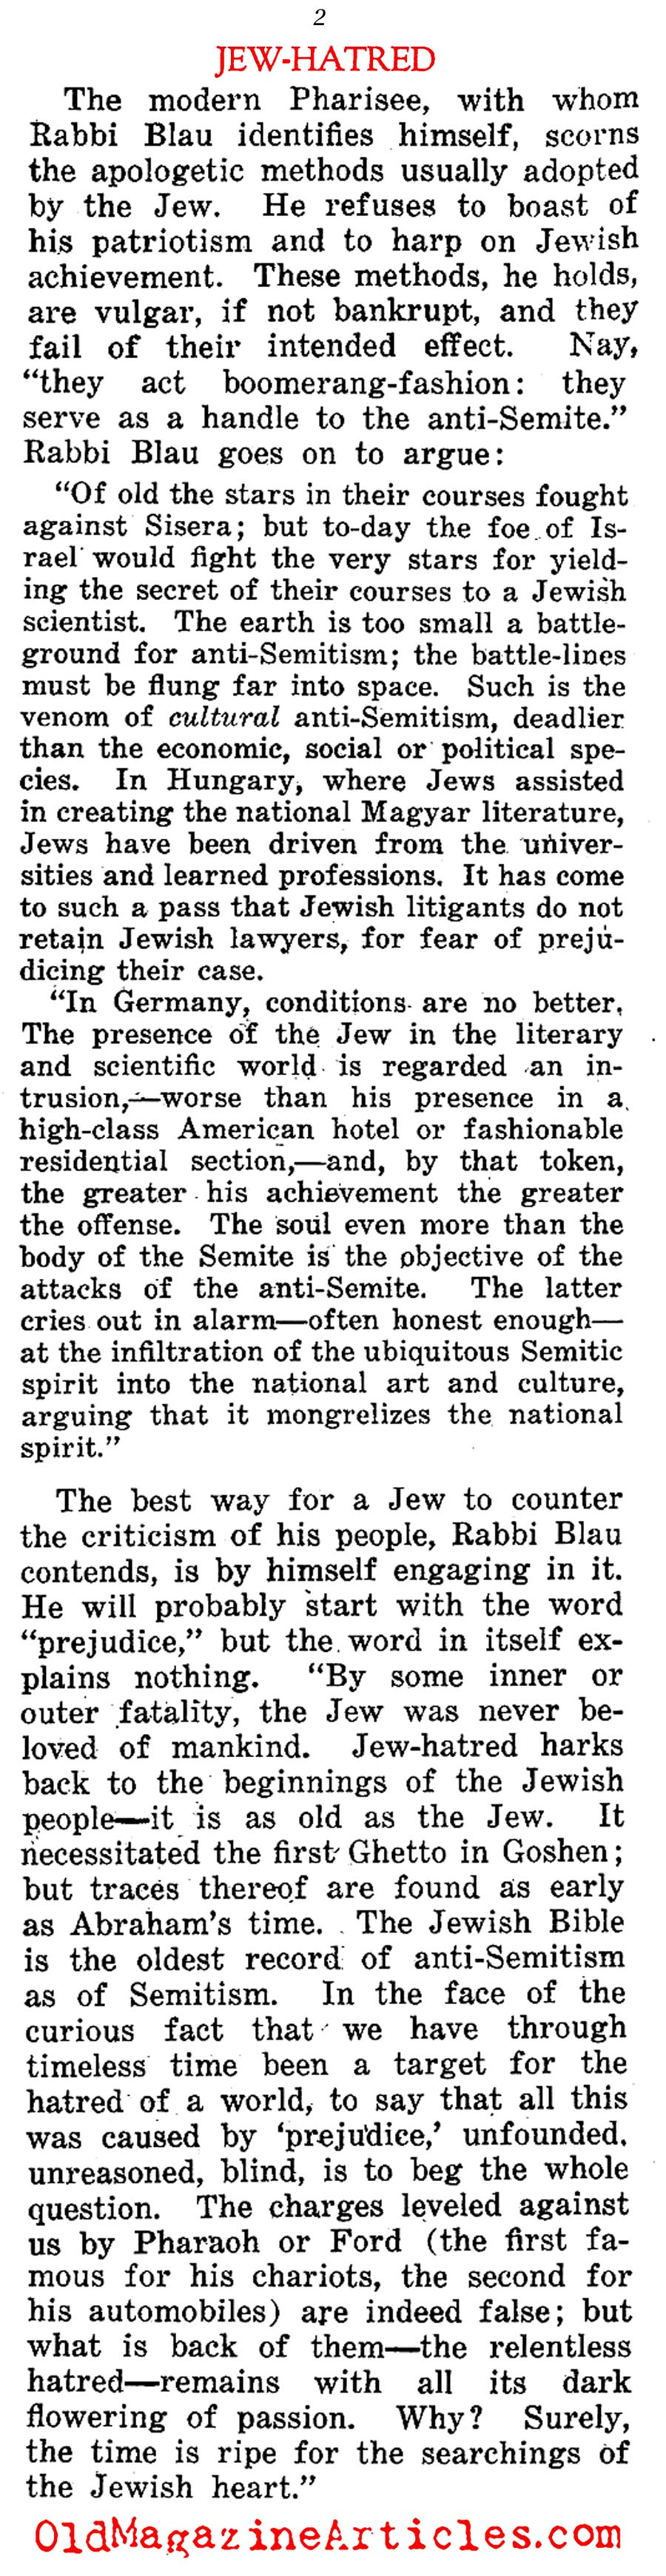 A Zionist Explanation of Jew-Hatred (Current Opinion, 1922)